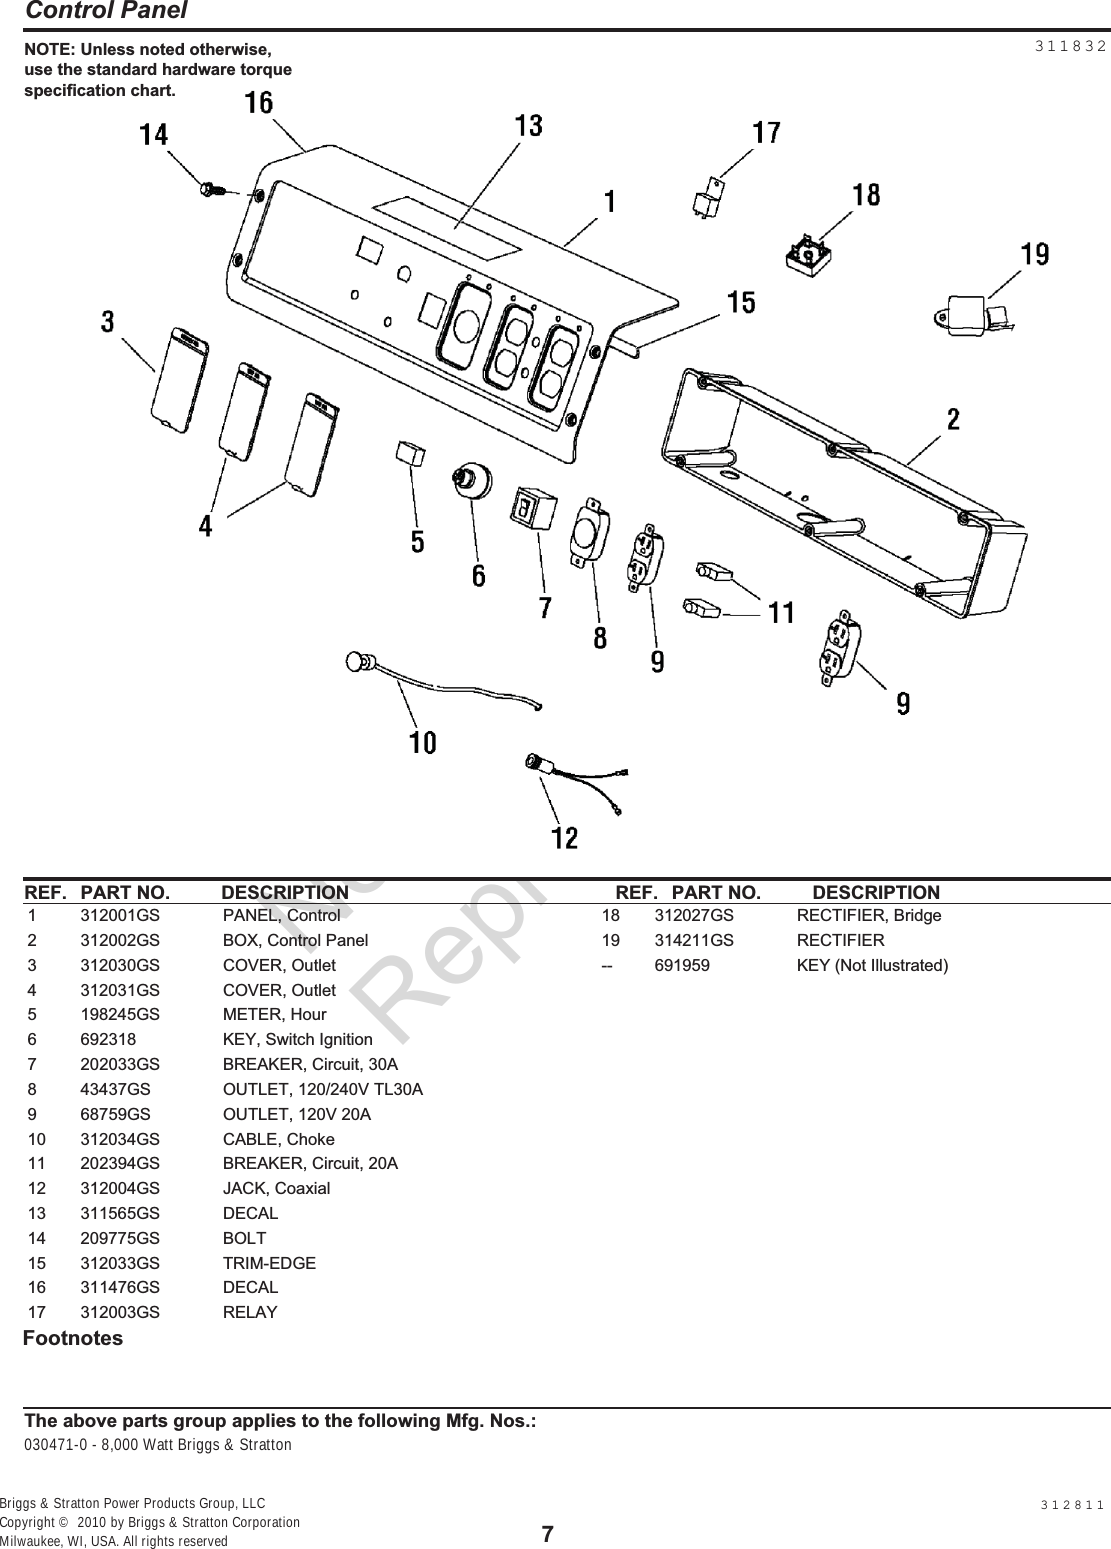 Cylinder Block Group Diagram And Parts List For Briggs Stratton All